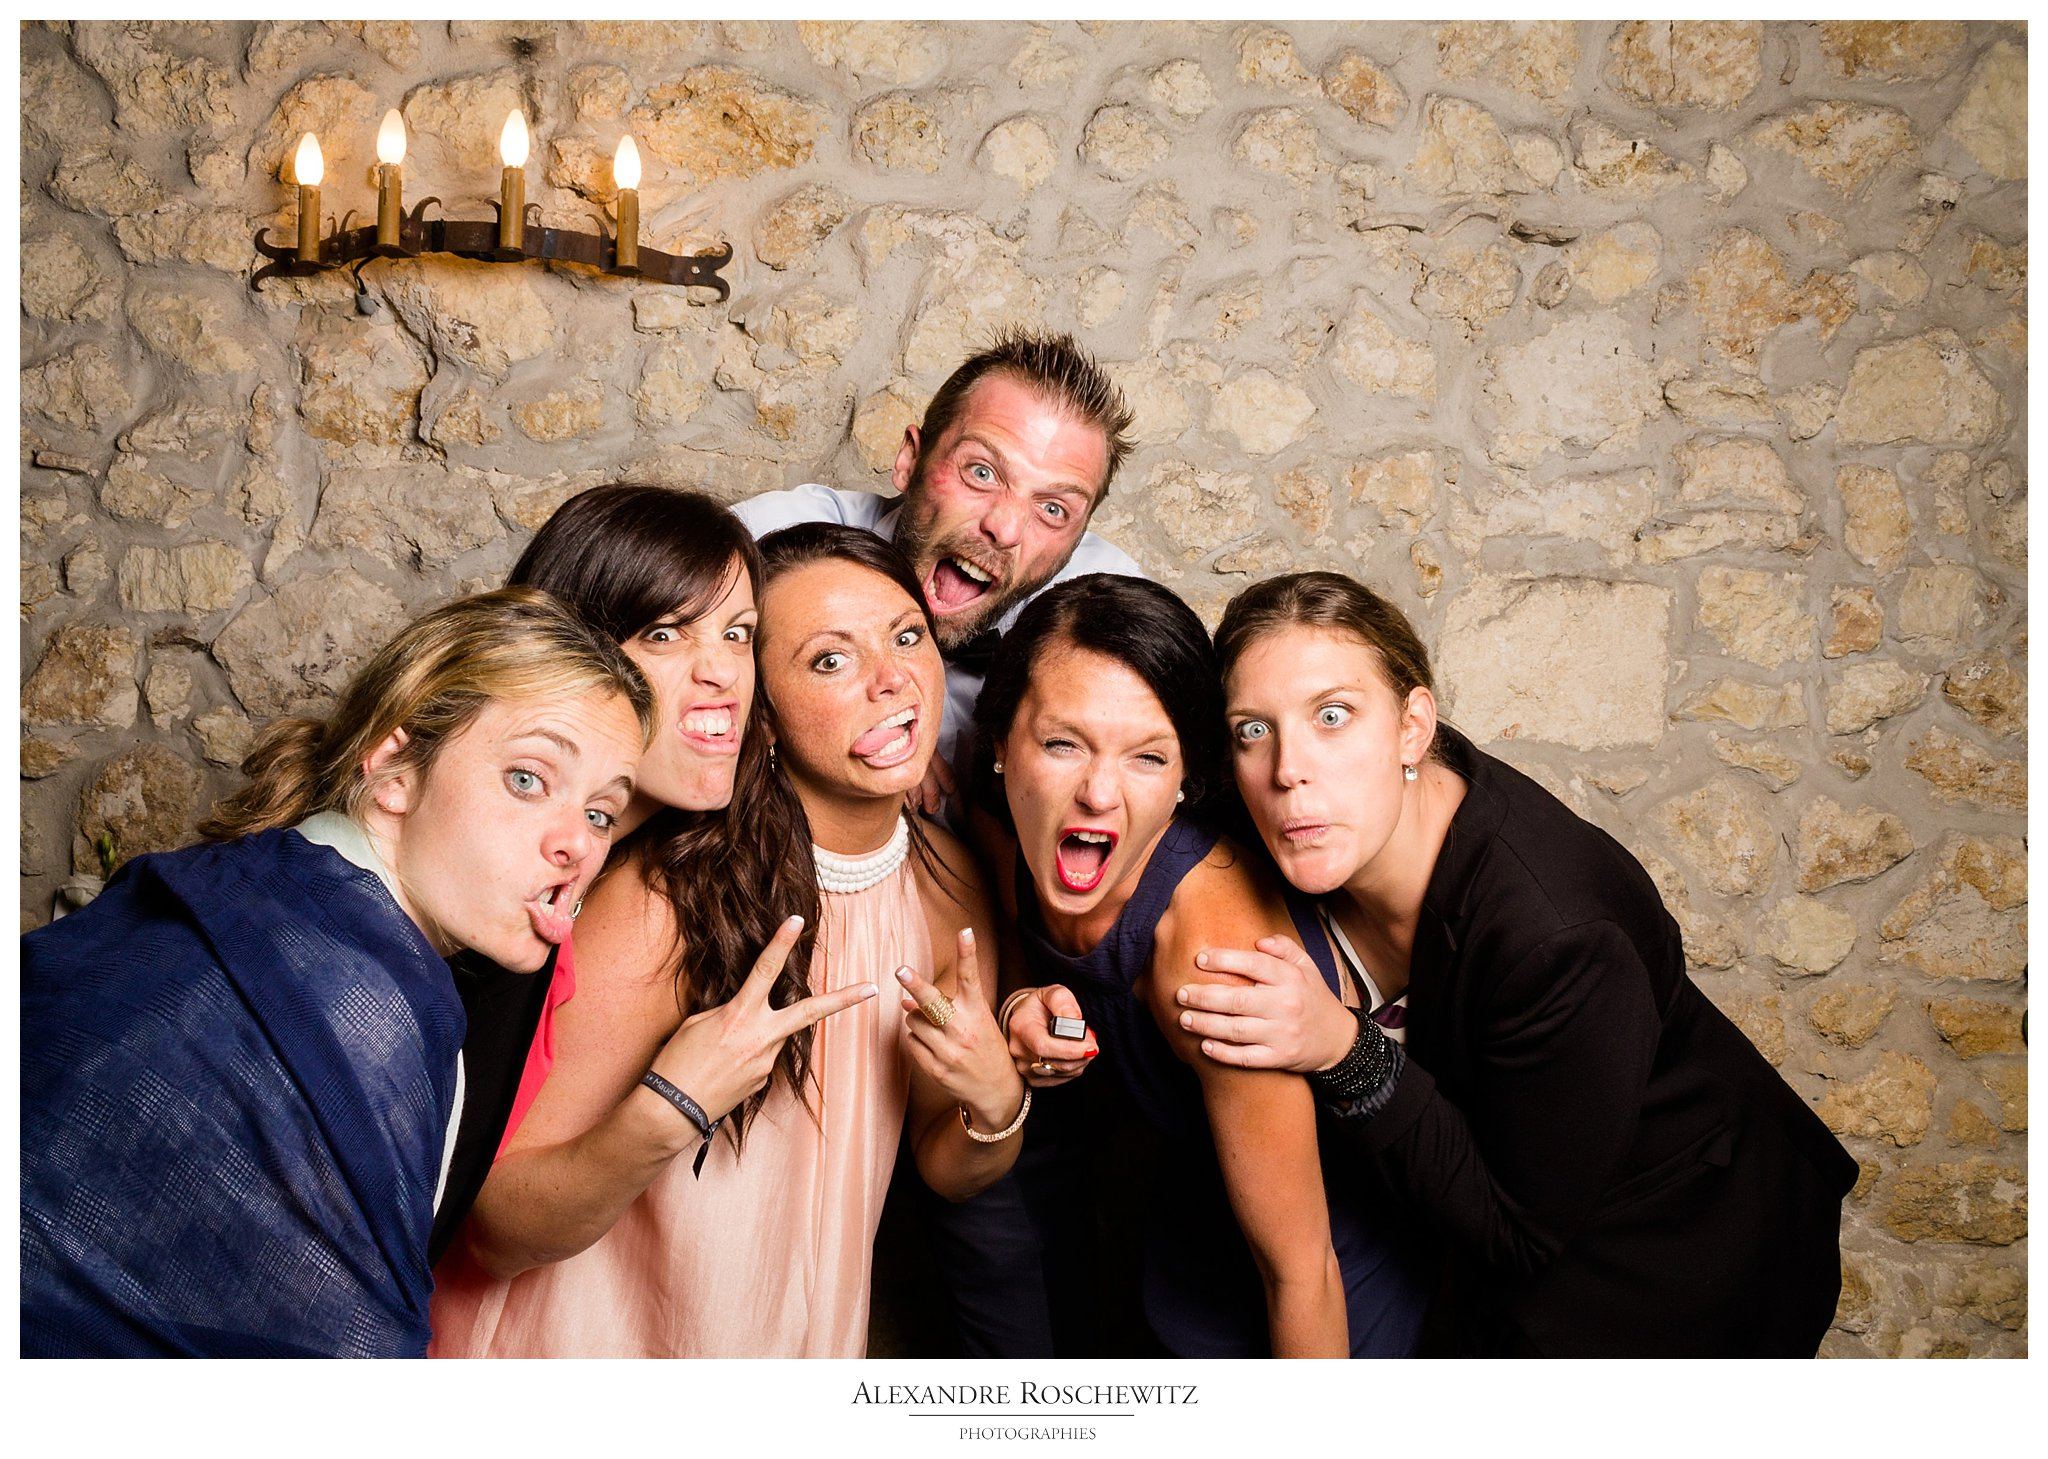 photobooth-mariage-merignac-gironde-maud-anthony-chateau-cujac-alexandre-roschewitz-photographies_1408_2048px